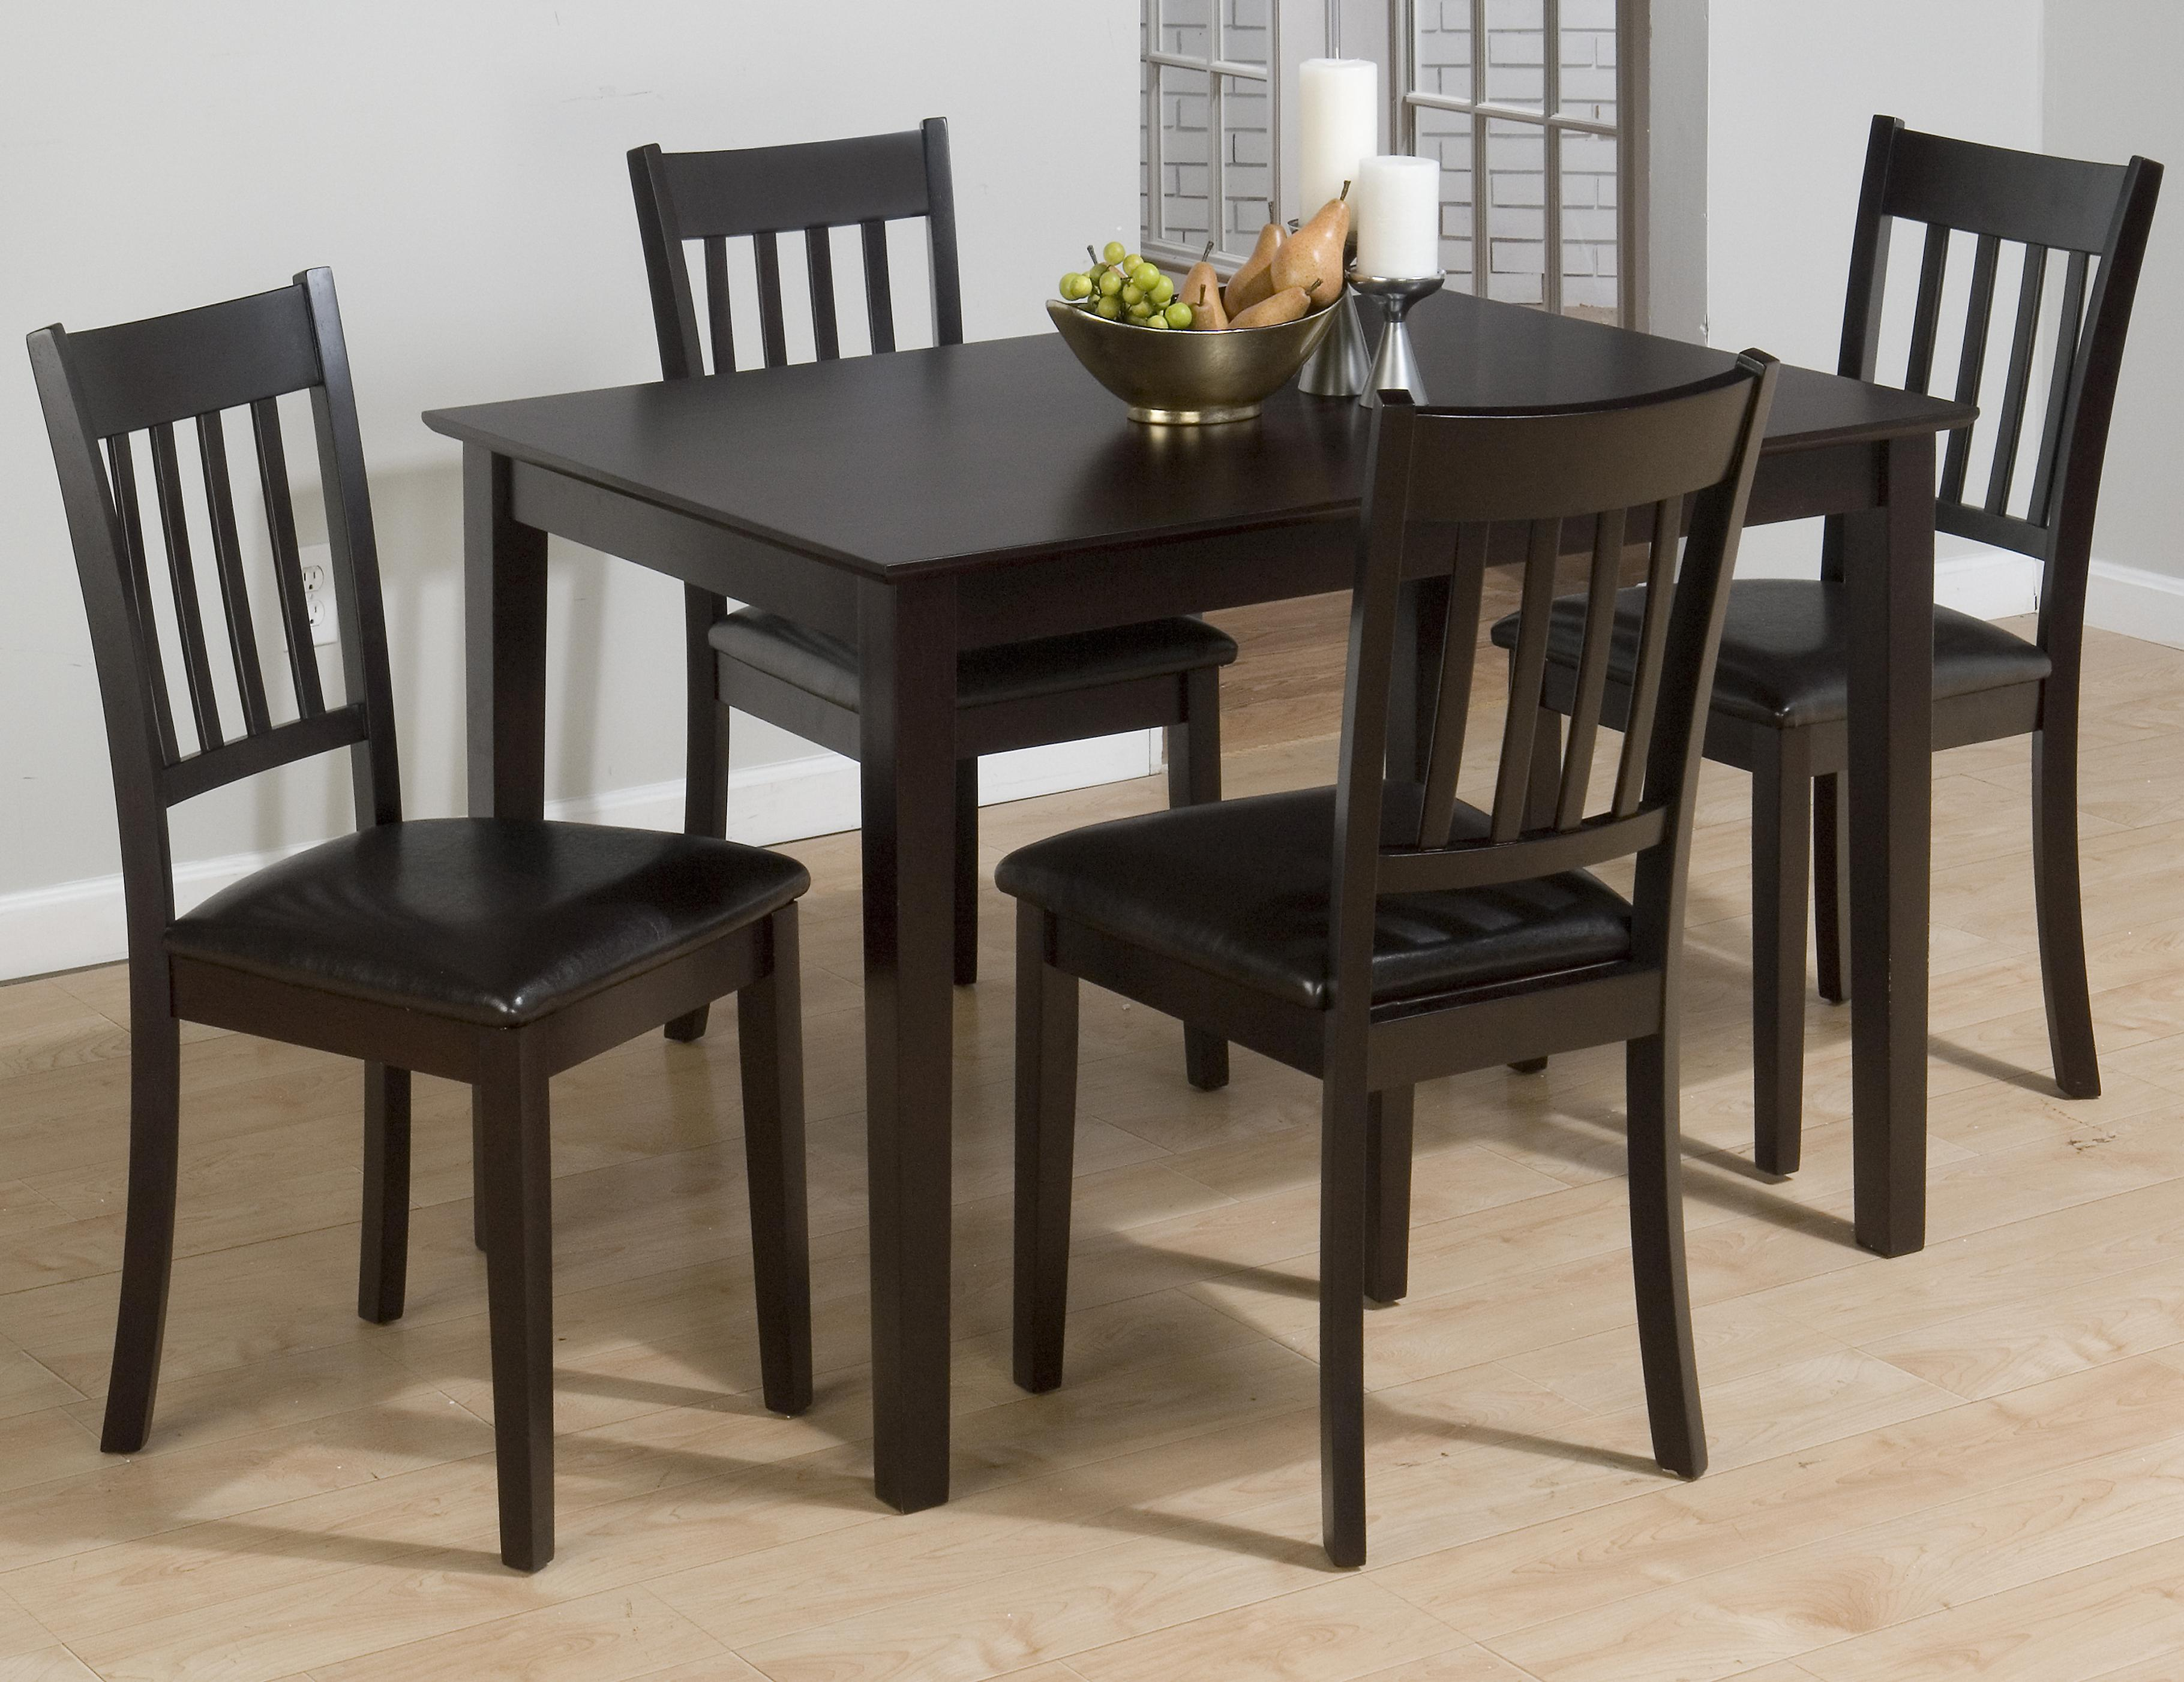 Jofran Marin County Five Piece Table and Chair Dining Set - Item Number: 891